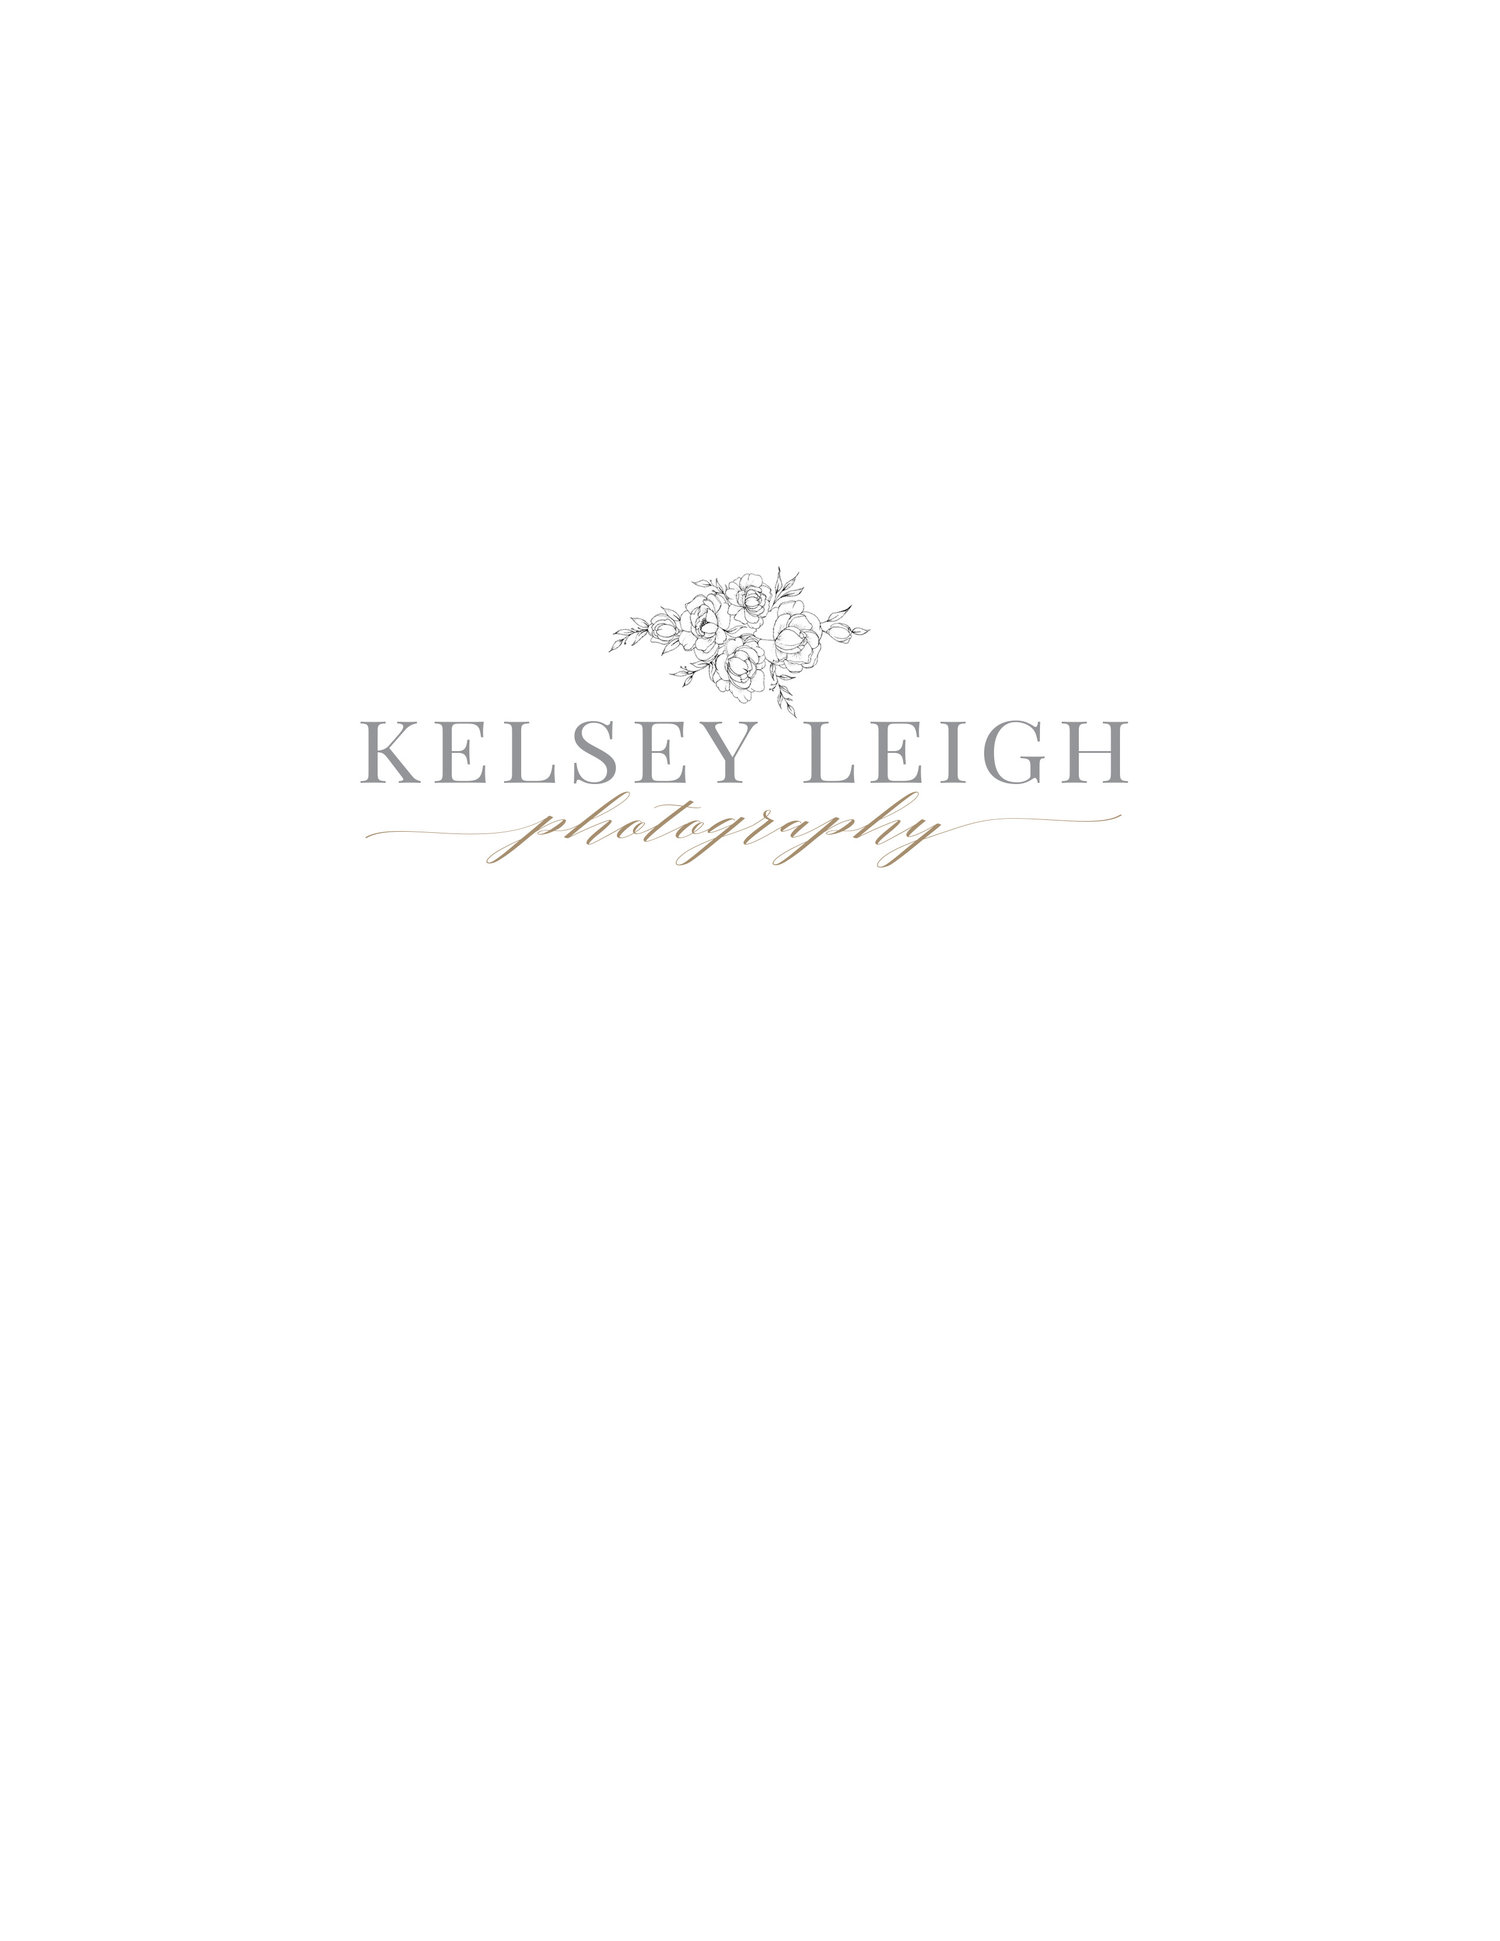 kelsey leigh photography